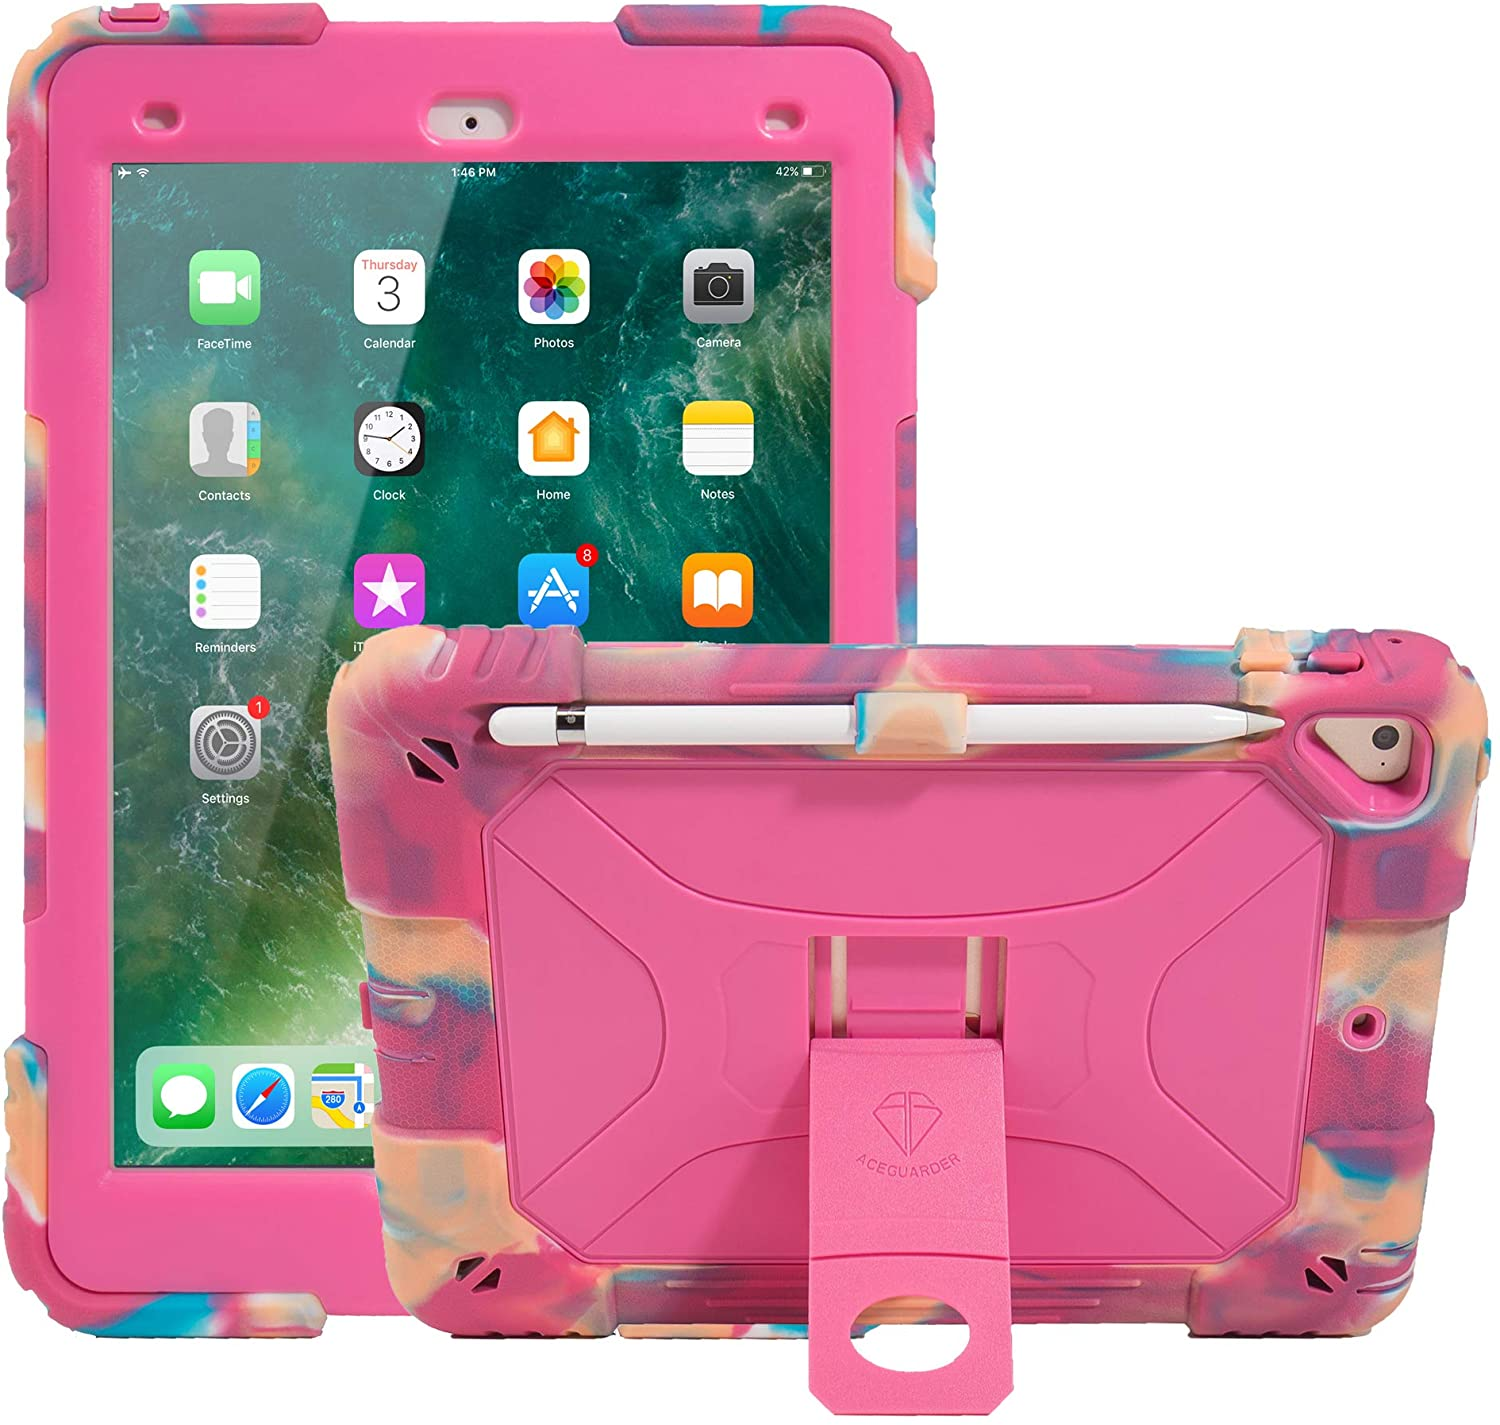 ACEGUARDER iPad 9.7 Case iPad 2018/2017 iPad 9.7 inch Soft Silicone Protective Case Shockproof Rugged Drop Protection Cover Built with Kickstand (Rainbow)